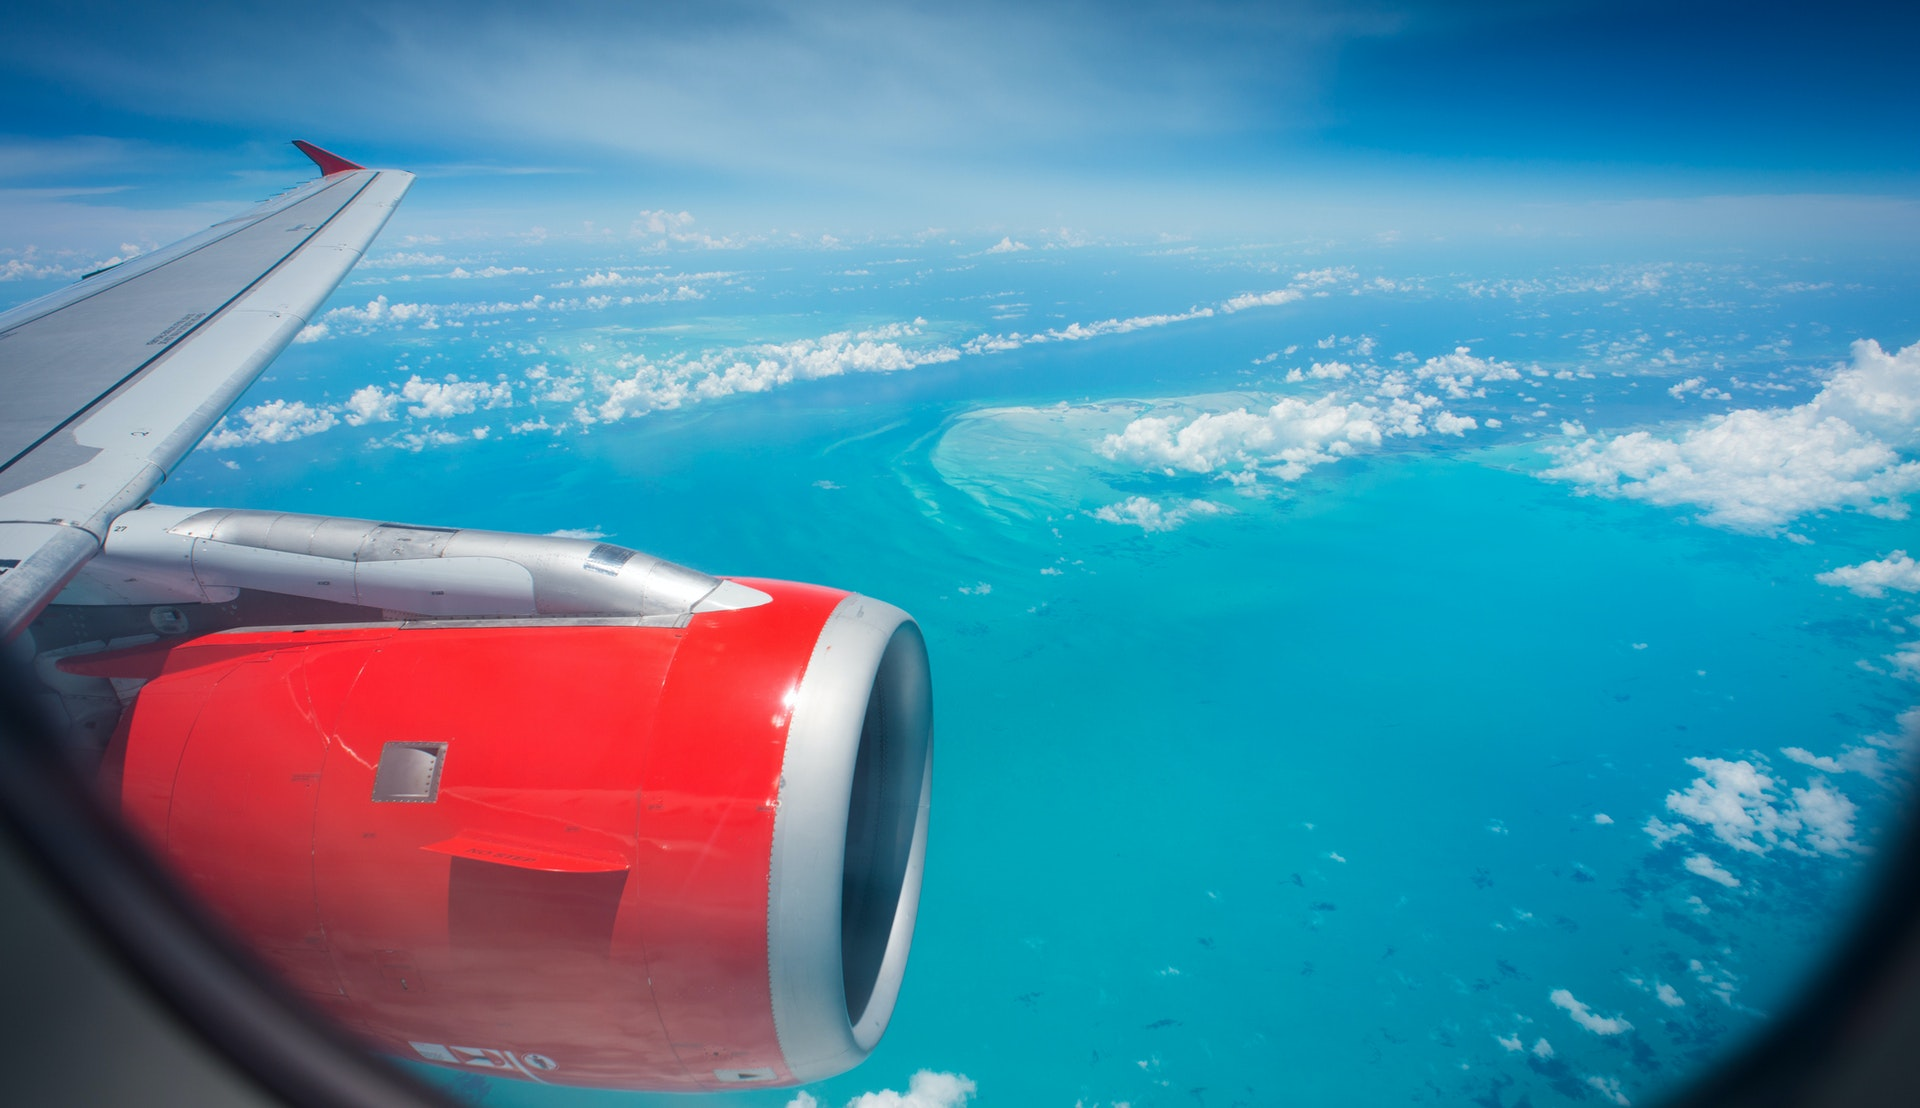 Fly over Bahamas © stockstudioX, Getty Images